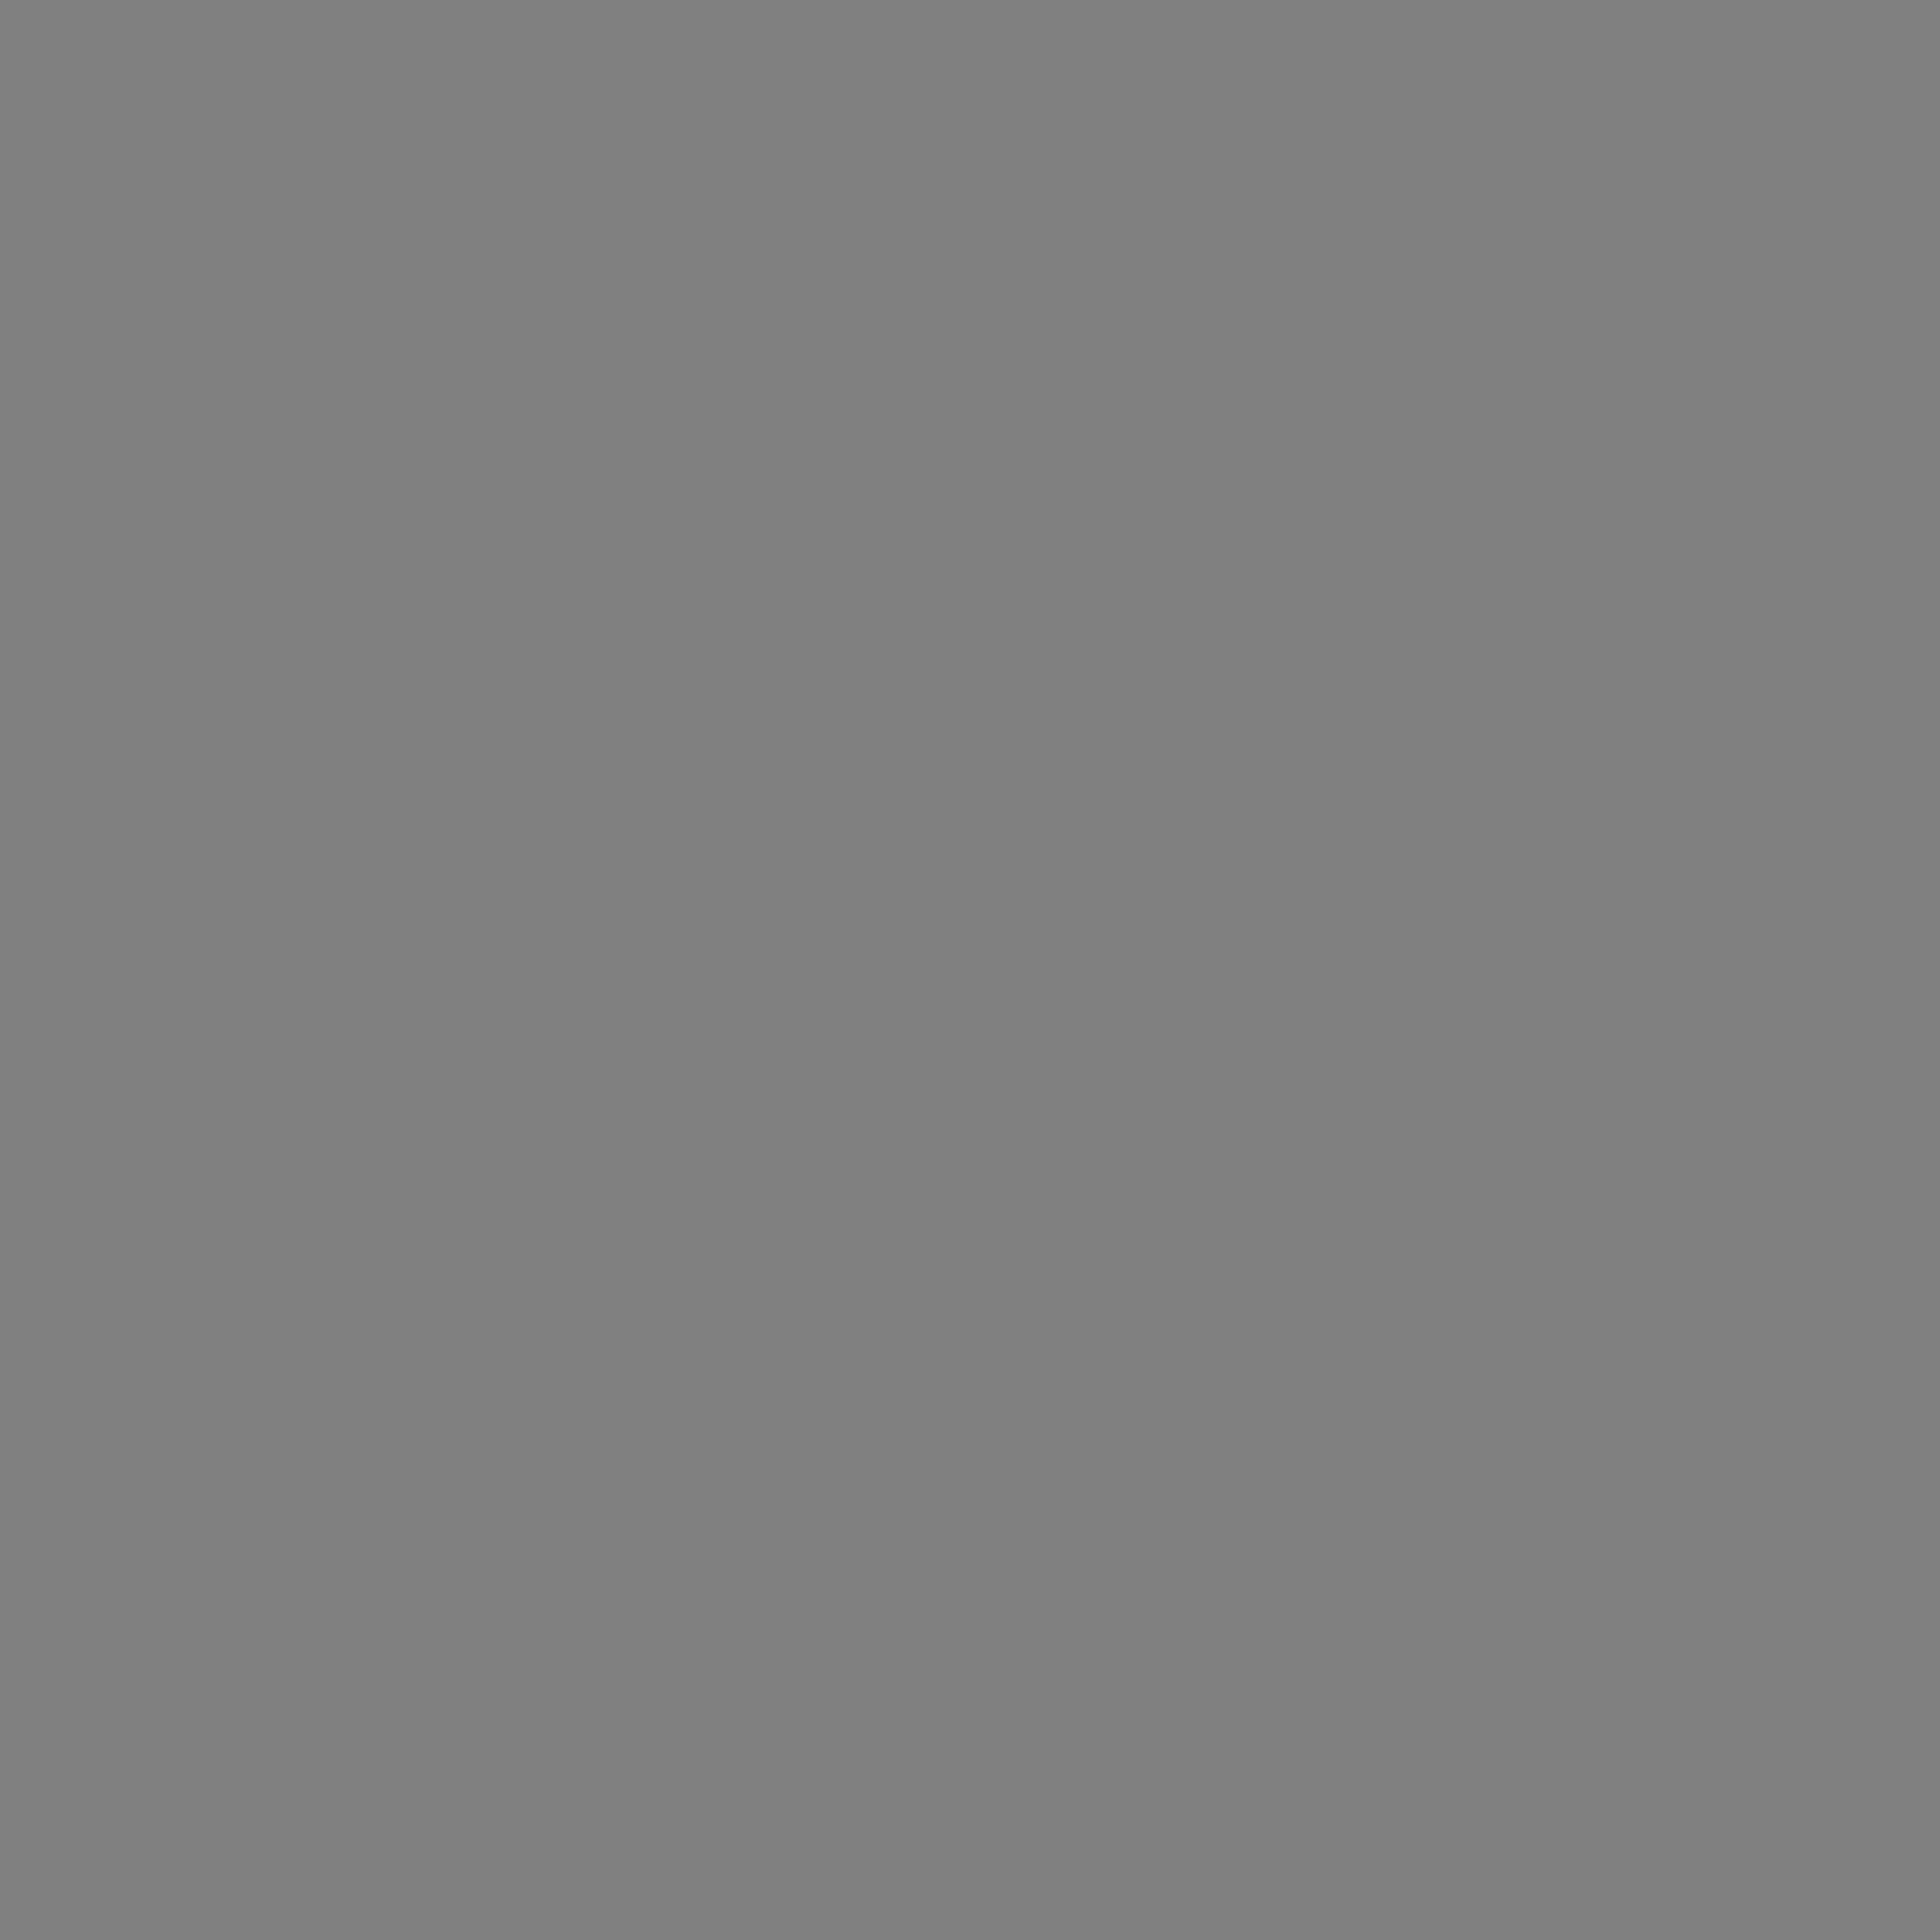 2048x2048 Trolley Grey Solid Color Background